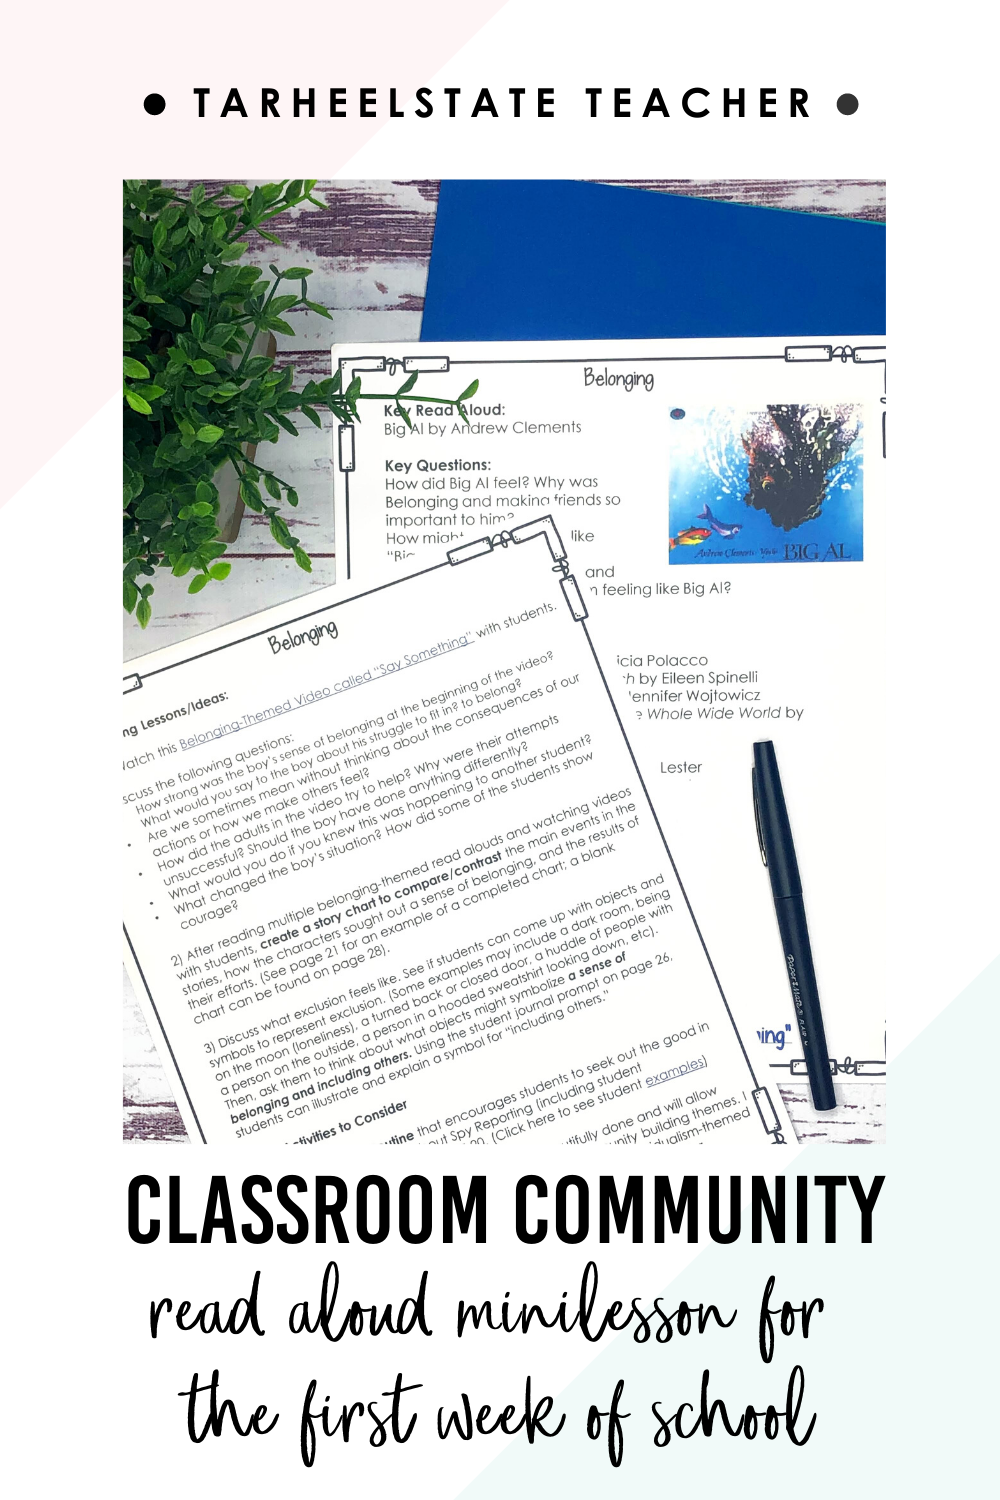 Creating A Sense Of Belonging Setting The Foundation For An Inclusive Classroom Community Tarheelstate Teacher In 2020 Classroom Community Inclusion Classroom School Lesson Plans